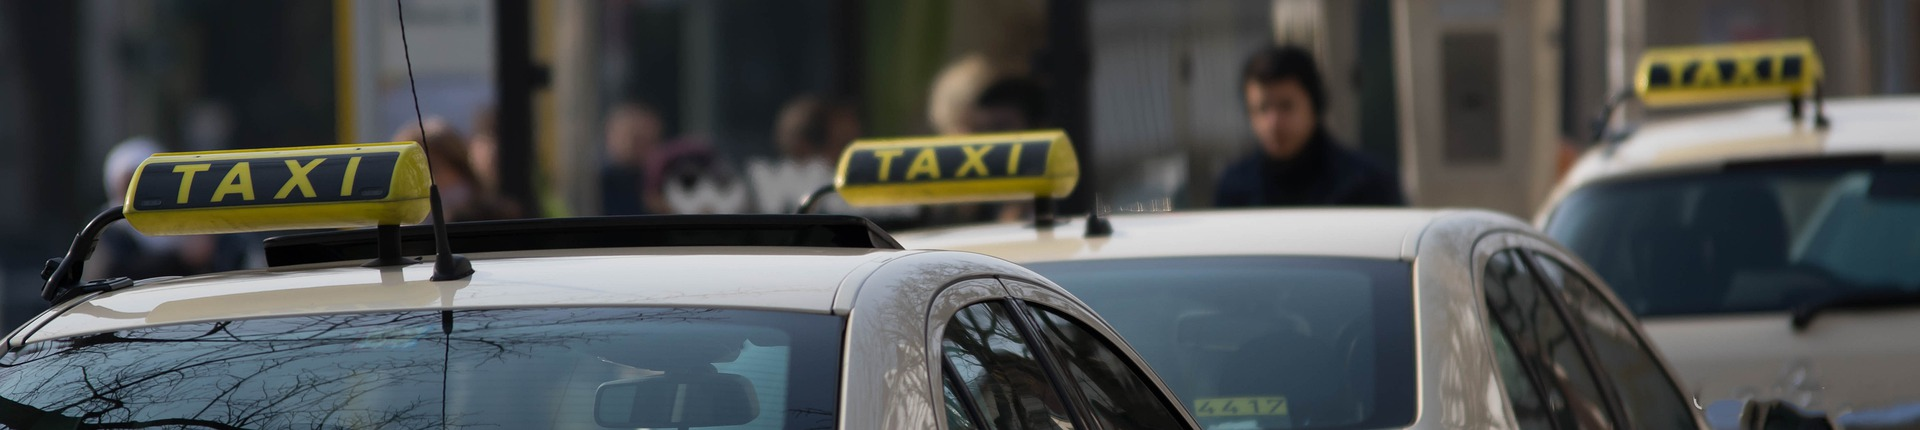 Taxi Gommern